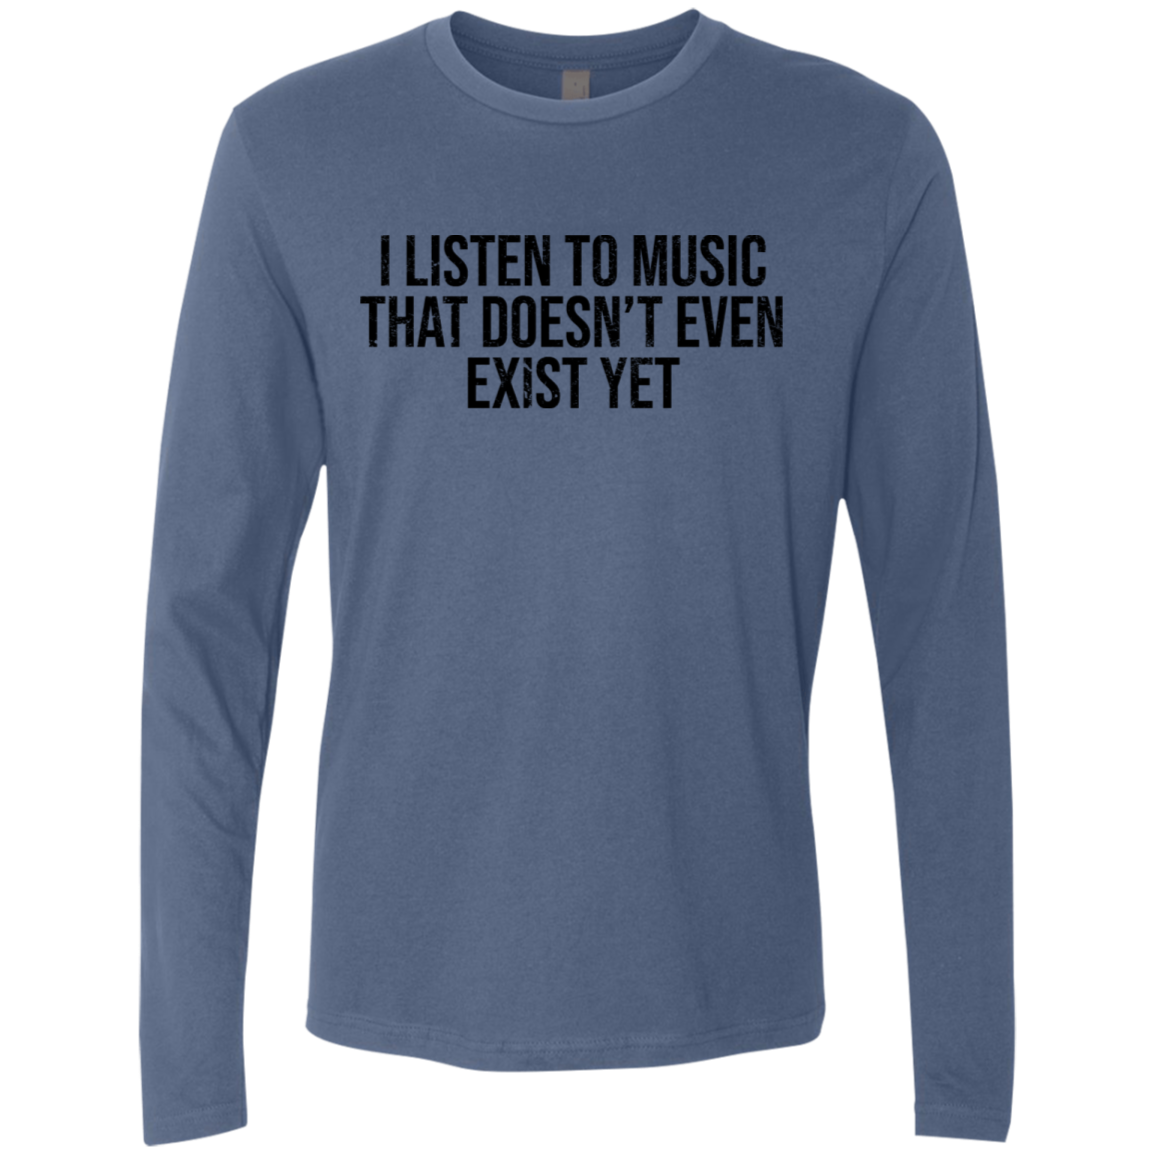 I Listen To Music That Doesn't Exist Yet Men's Long Sleeve Tee